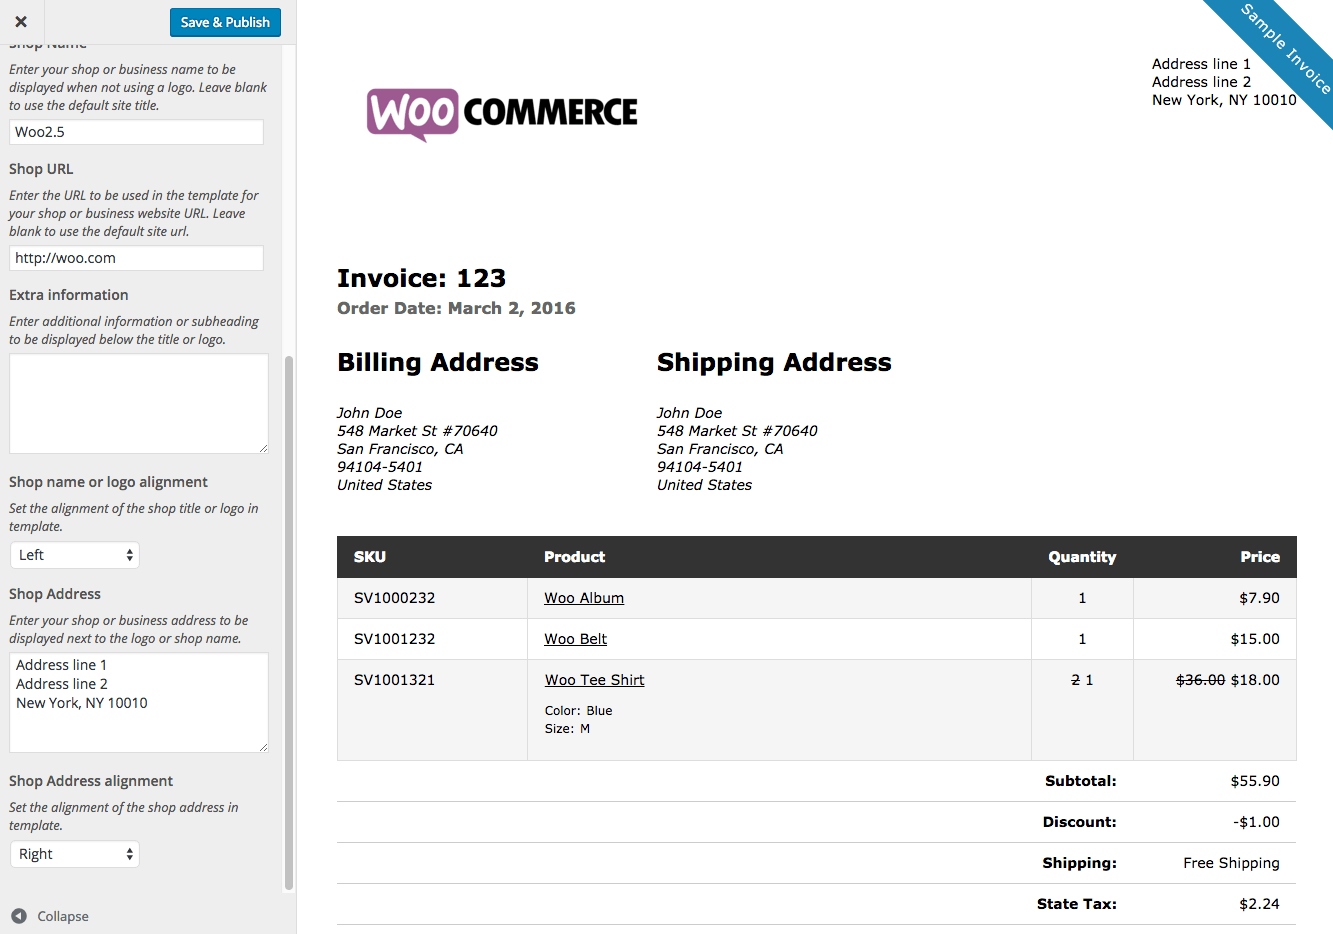 Ediblewildsus  Gorgeous Print Invoices Amp Packing Lists  Woocommerce With Handsome Woocommerce Print Invoices  Packing Lists Customizer With Enchanting Receipt Print Out Also Excel Cash Receipt Template In Addition Rent Receipt Template India And Confirmation Of Receipt Letter As Well As How To Certified Mail Return Receipt Additionally Lil Wayne Receipt Mp From Woocommercecom With Ediblewildsus  Handsome Print Invoices Amp Packing Lists  Woocommerce With Enchanting Woocommerce Print Invoices  Packing Lists Customizer And Gorgeous Receipt Print Out Also Excel Cash Receipt Template In Addition Rent Receipt Template India From Woocommercecom